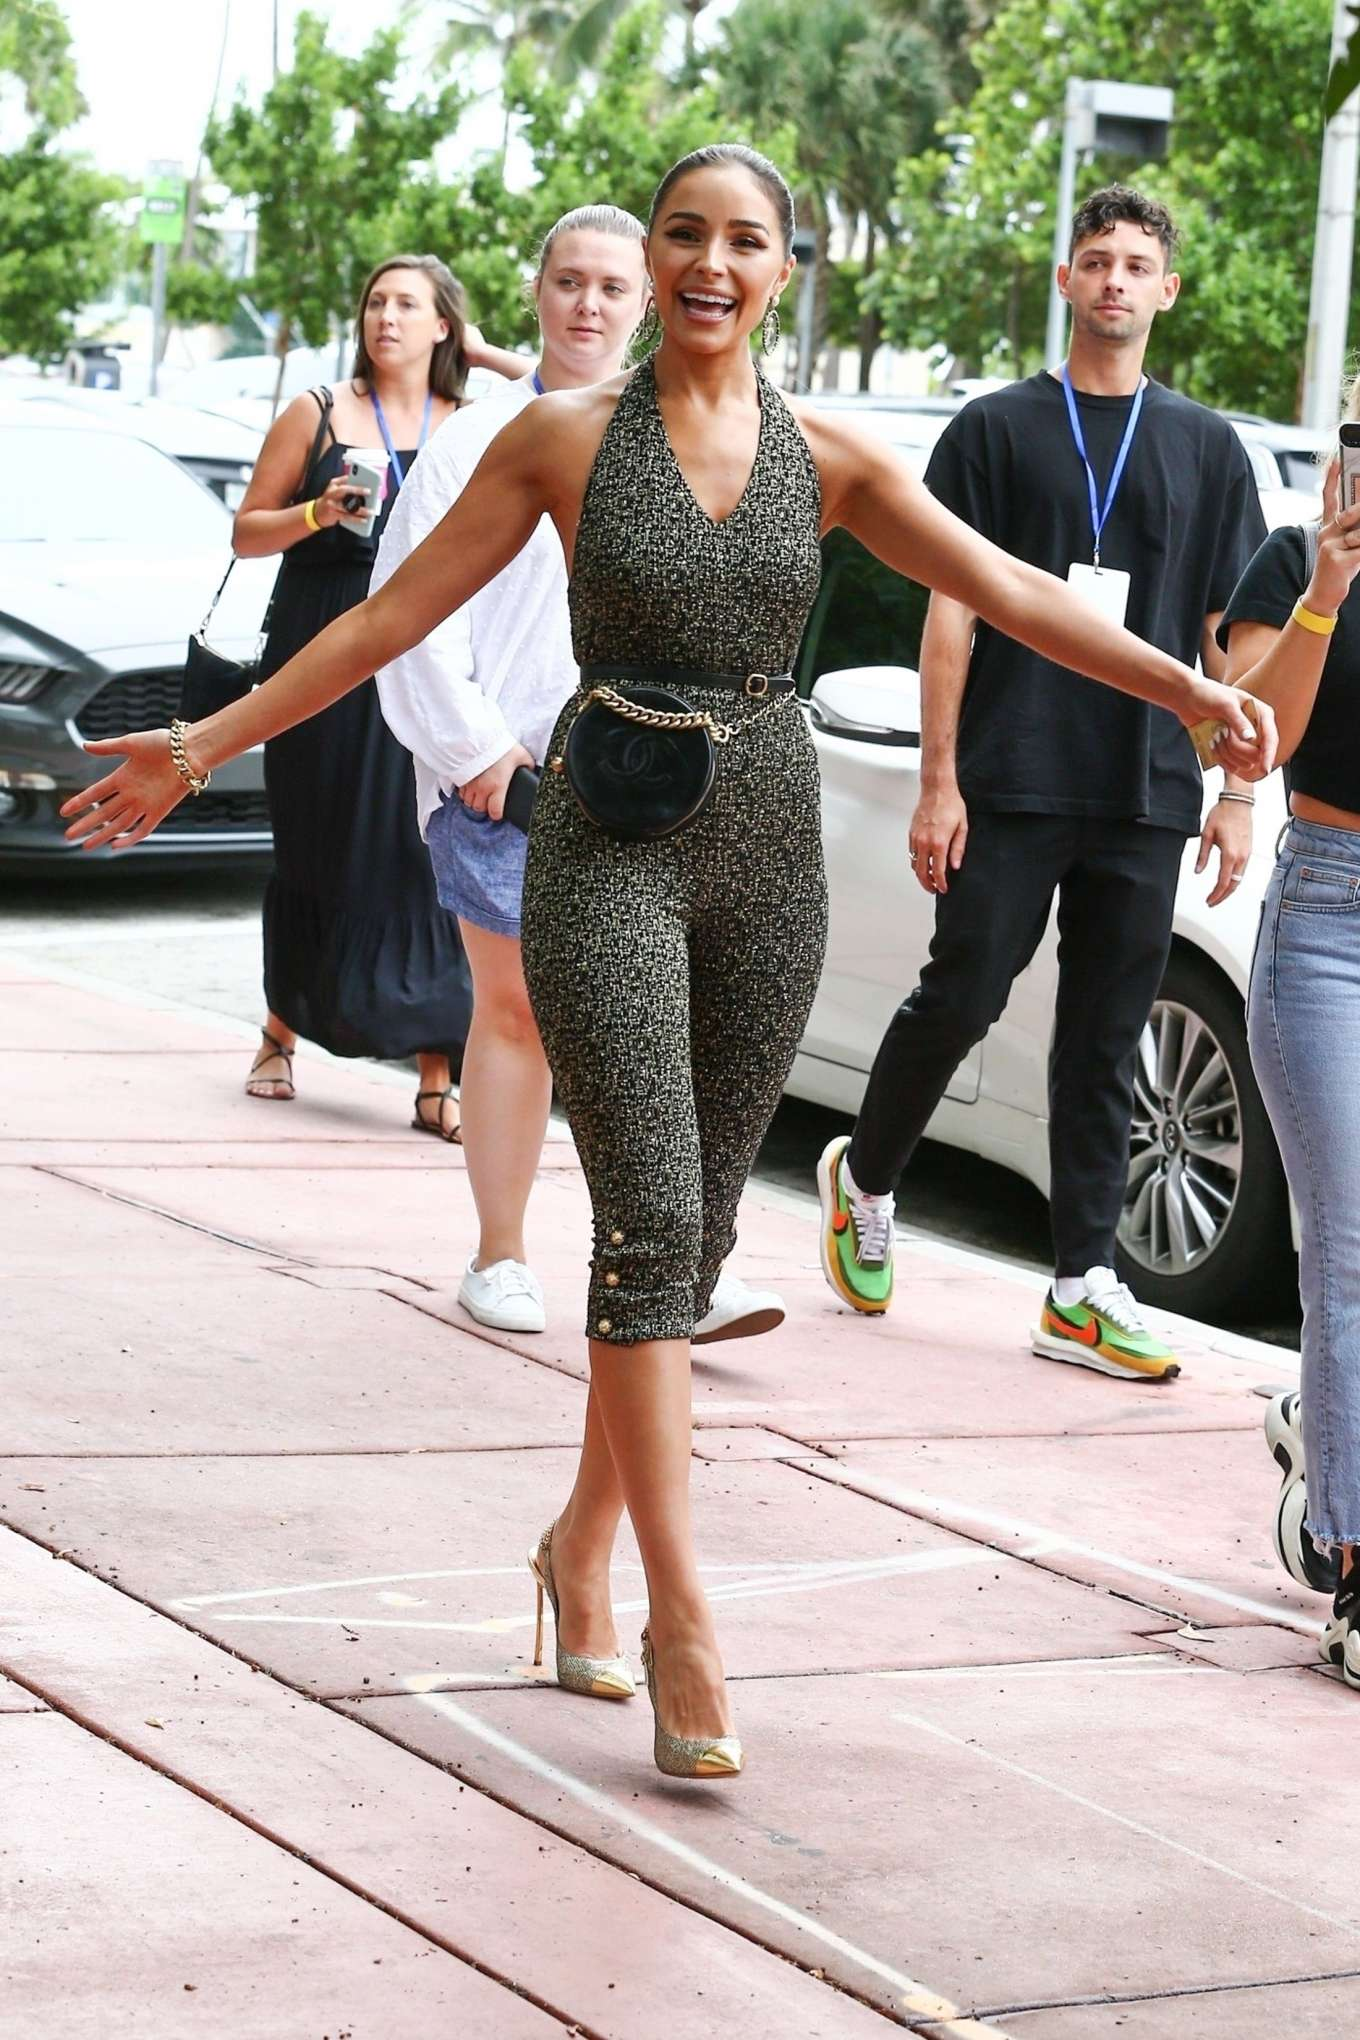 Olivia Culpo 2019 : Olivia Culpo – Attends a casting call for Sports Illustrated-06